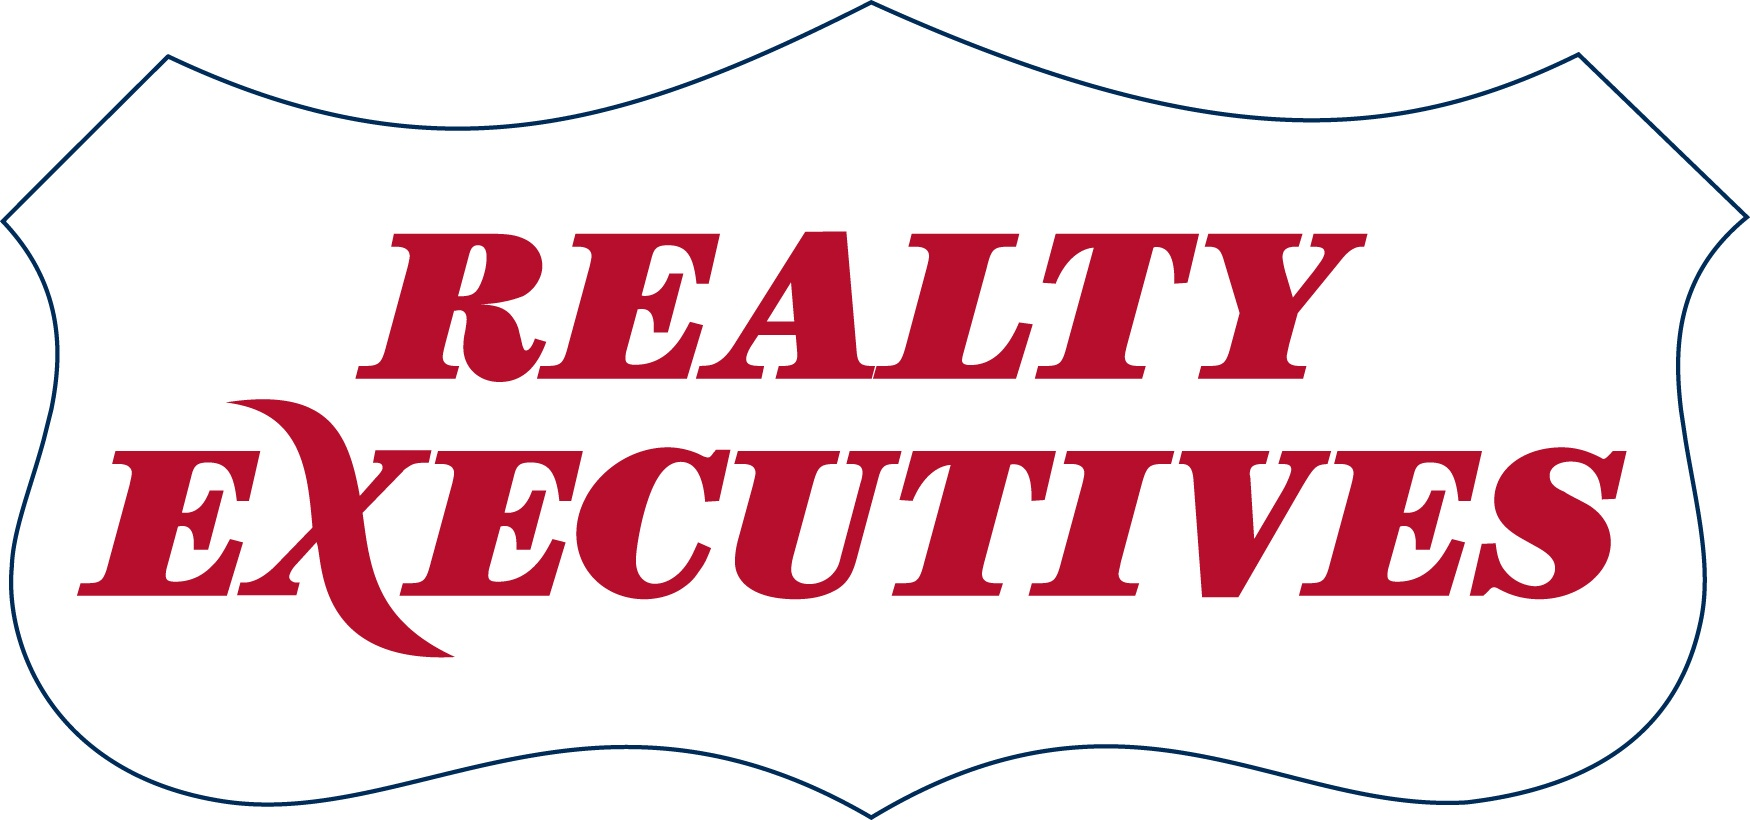 Realty Executives Valleywide Escrow